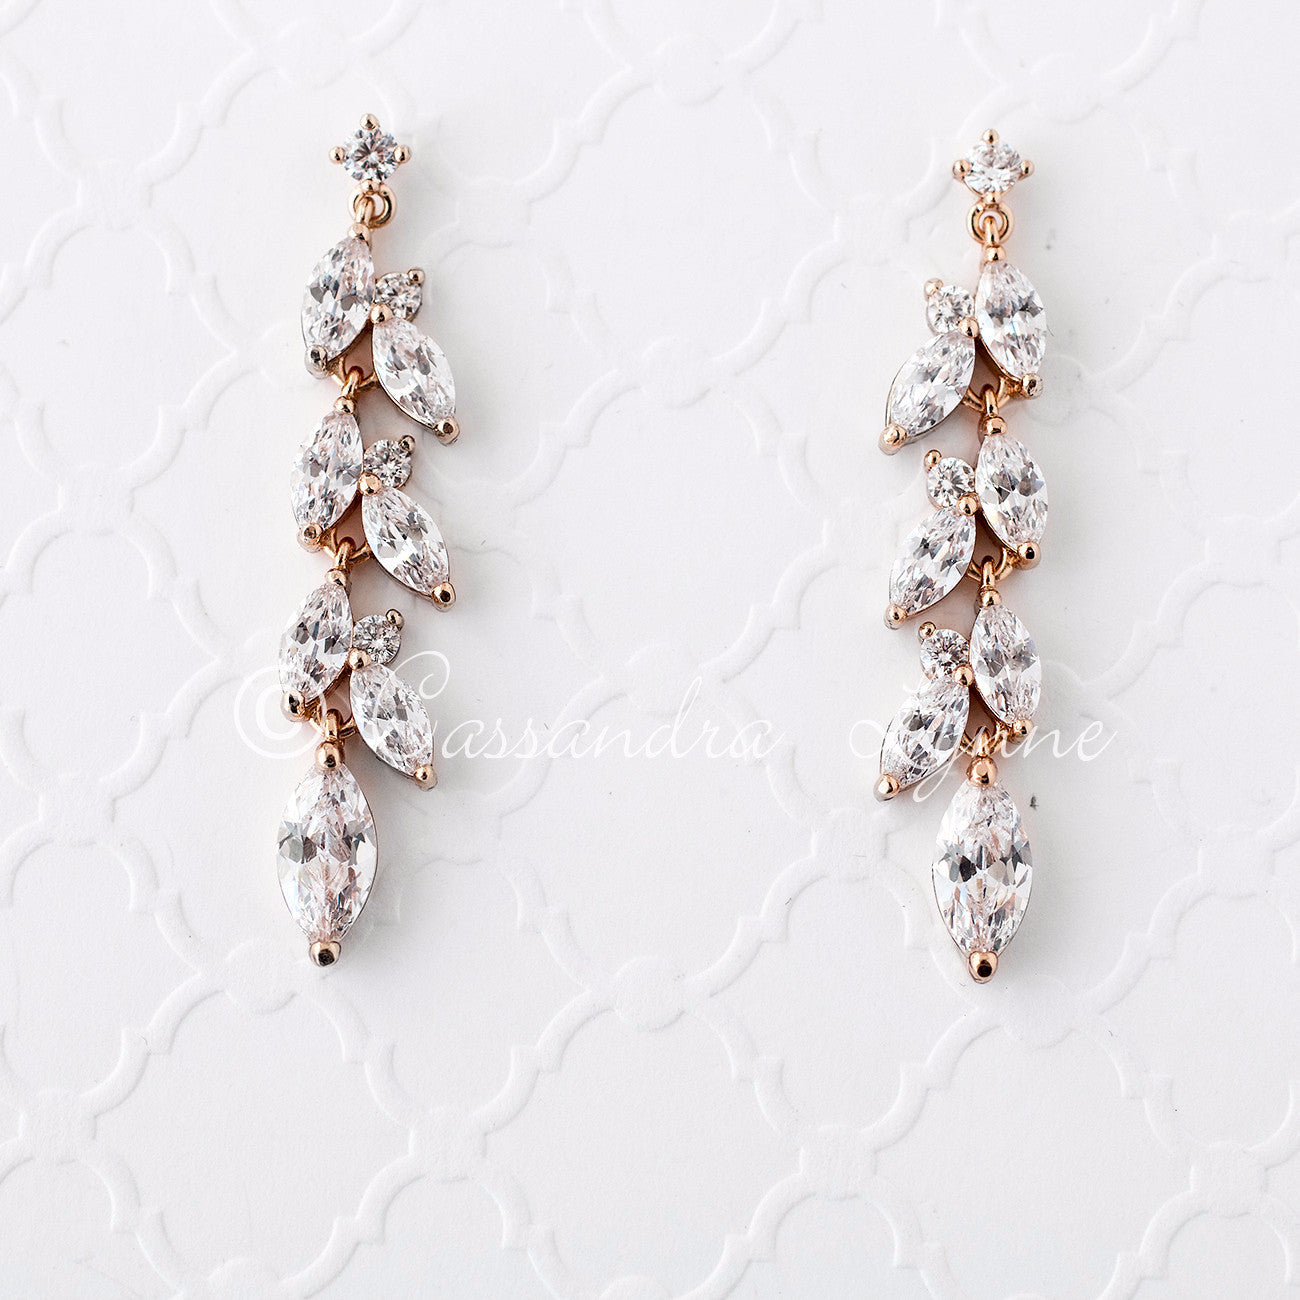 57e6354bd CZ Wedding Earrings with a Marquise Vine Design - Cassandra Lynne